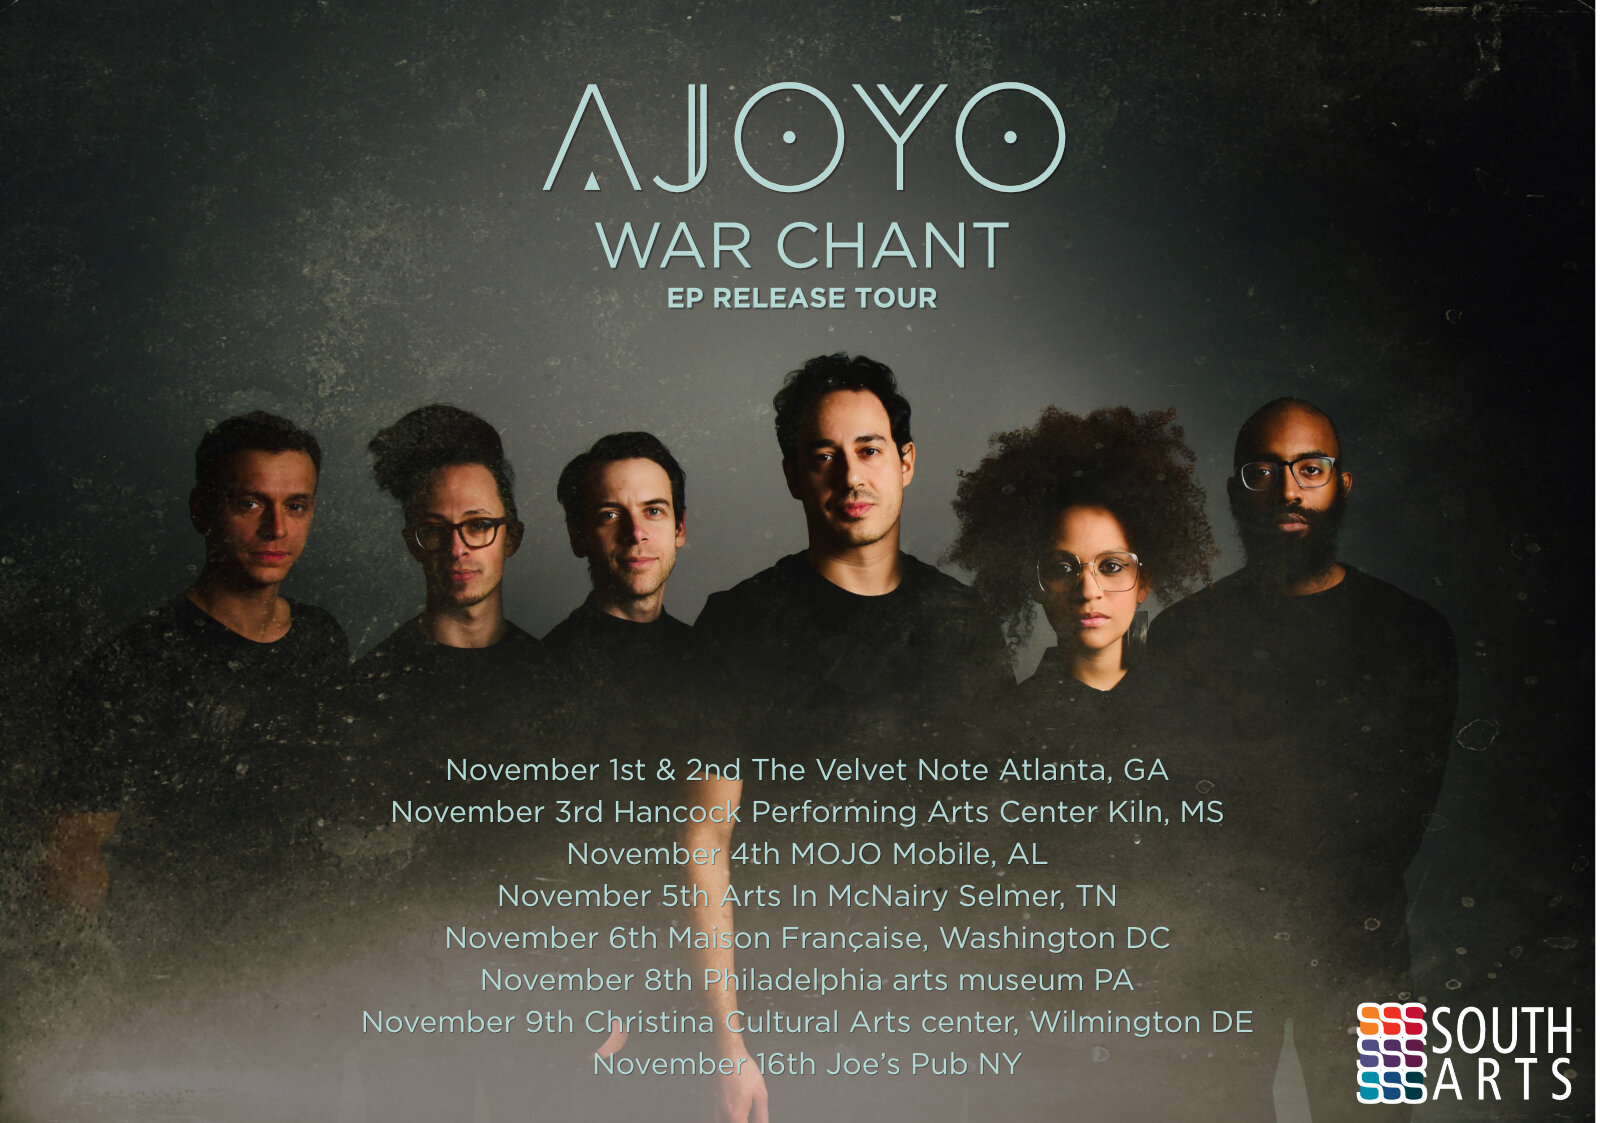 This tour is made possible with the support of Jazz Road, a national initiative of South Arts, which is funded by the Doris Duke Charitable Foundation with additional support from The Andrew W. Mellon Foundation.